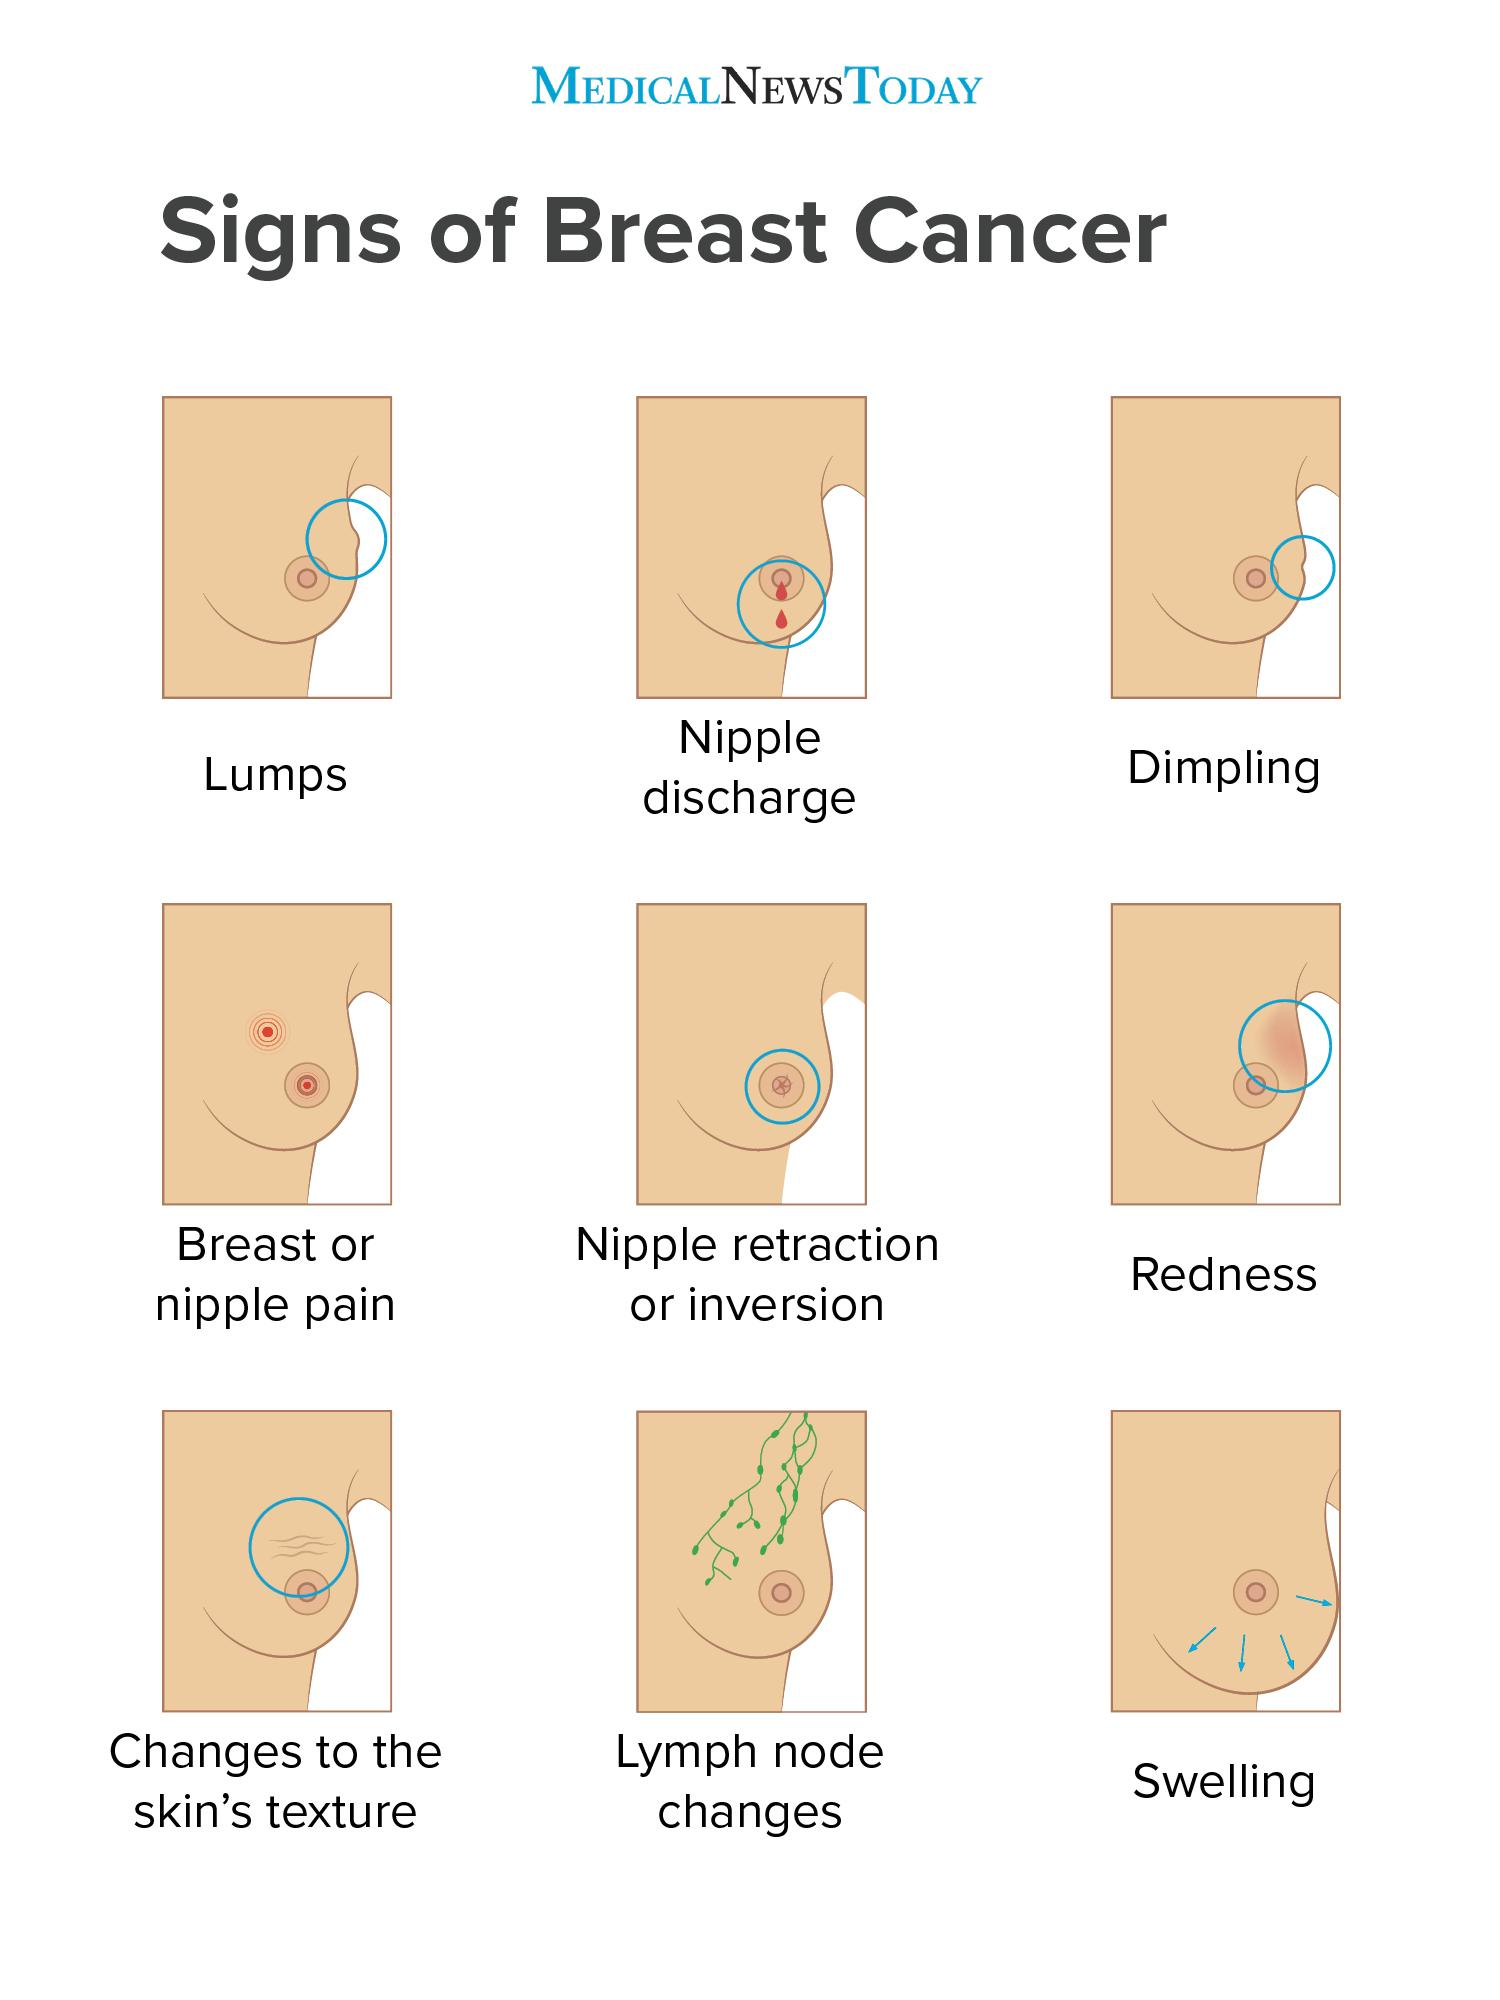 How To Deal With Breast Pain With A History Of Breast Abscess Surgery?